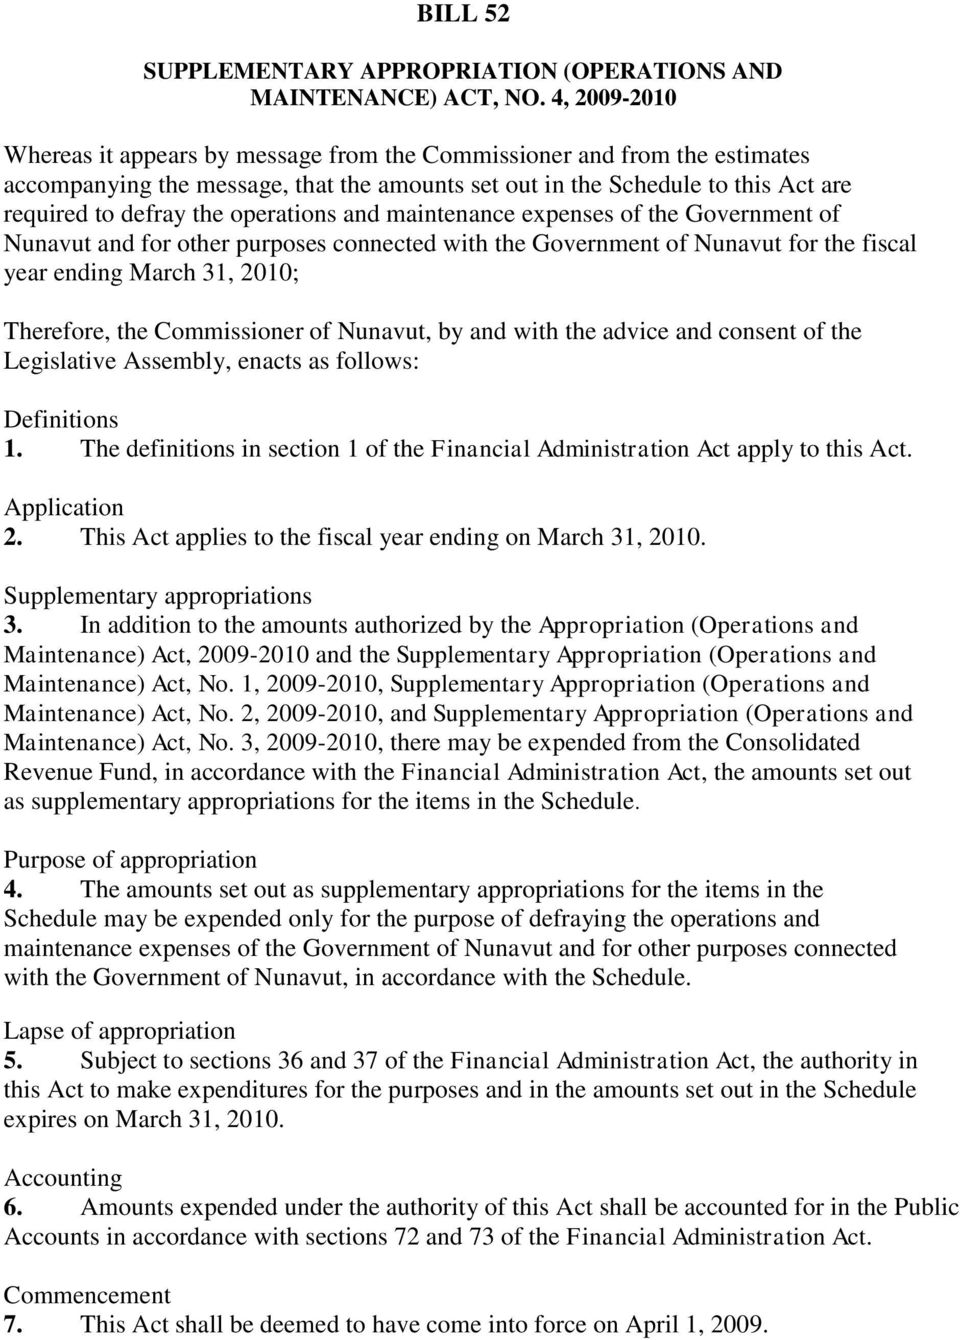 operations and maintenance expenses of the Government of Nunavut and for other purposes connected with the Government of Nunavut for the fiscal year ending March 31, 2010; Therefore, the Commissioner